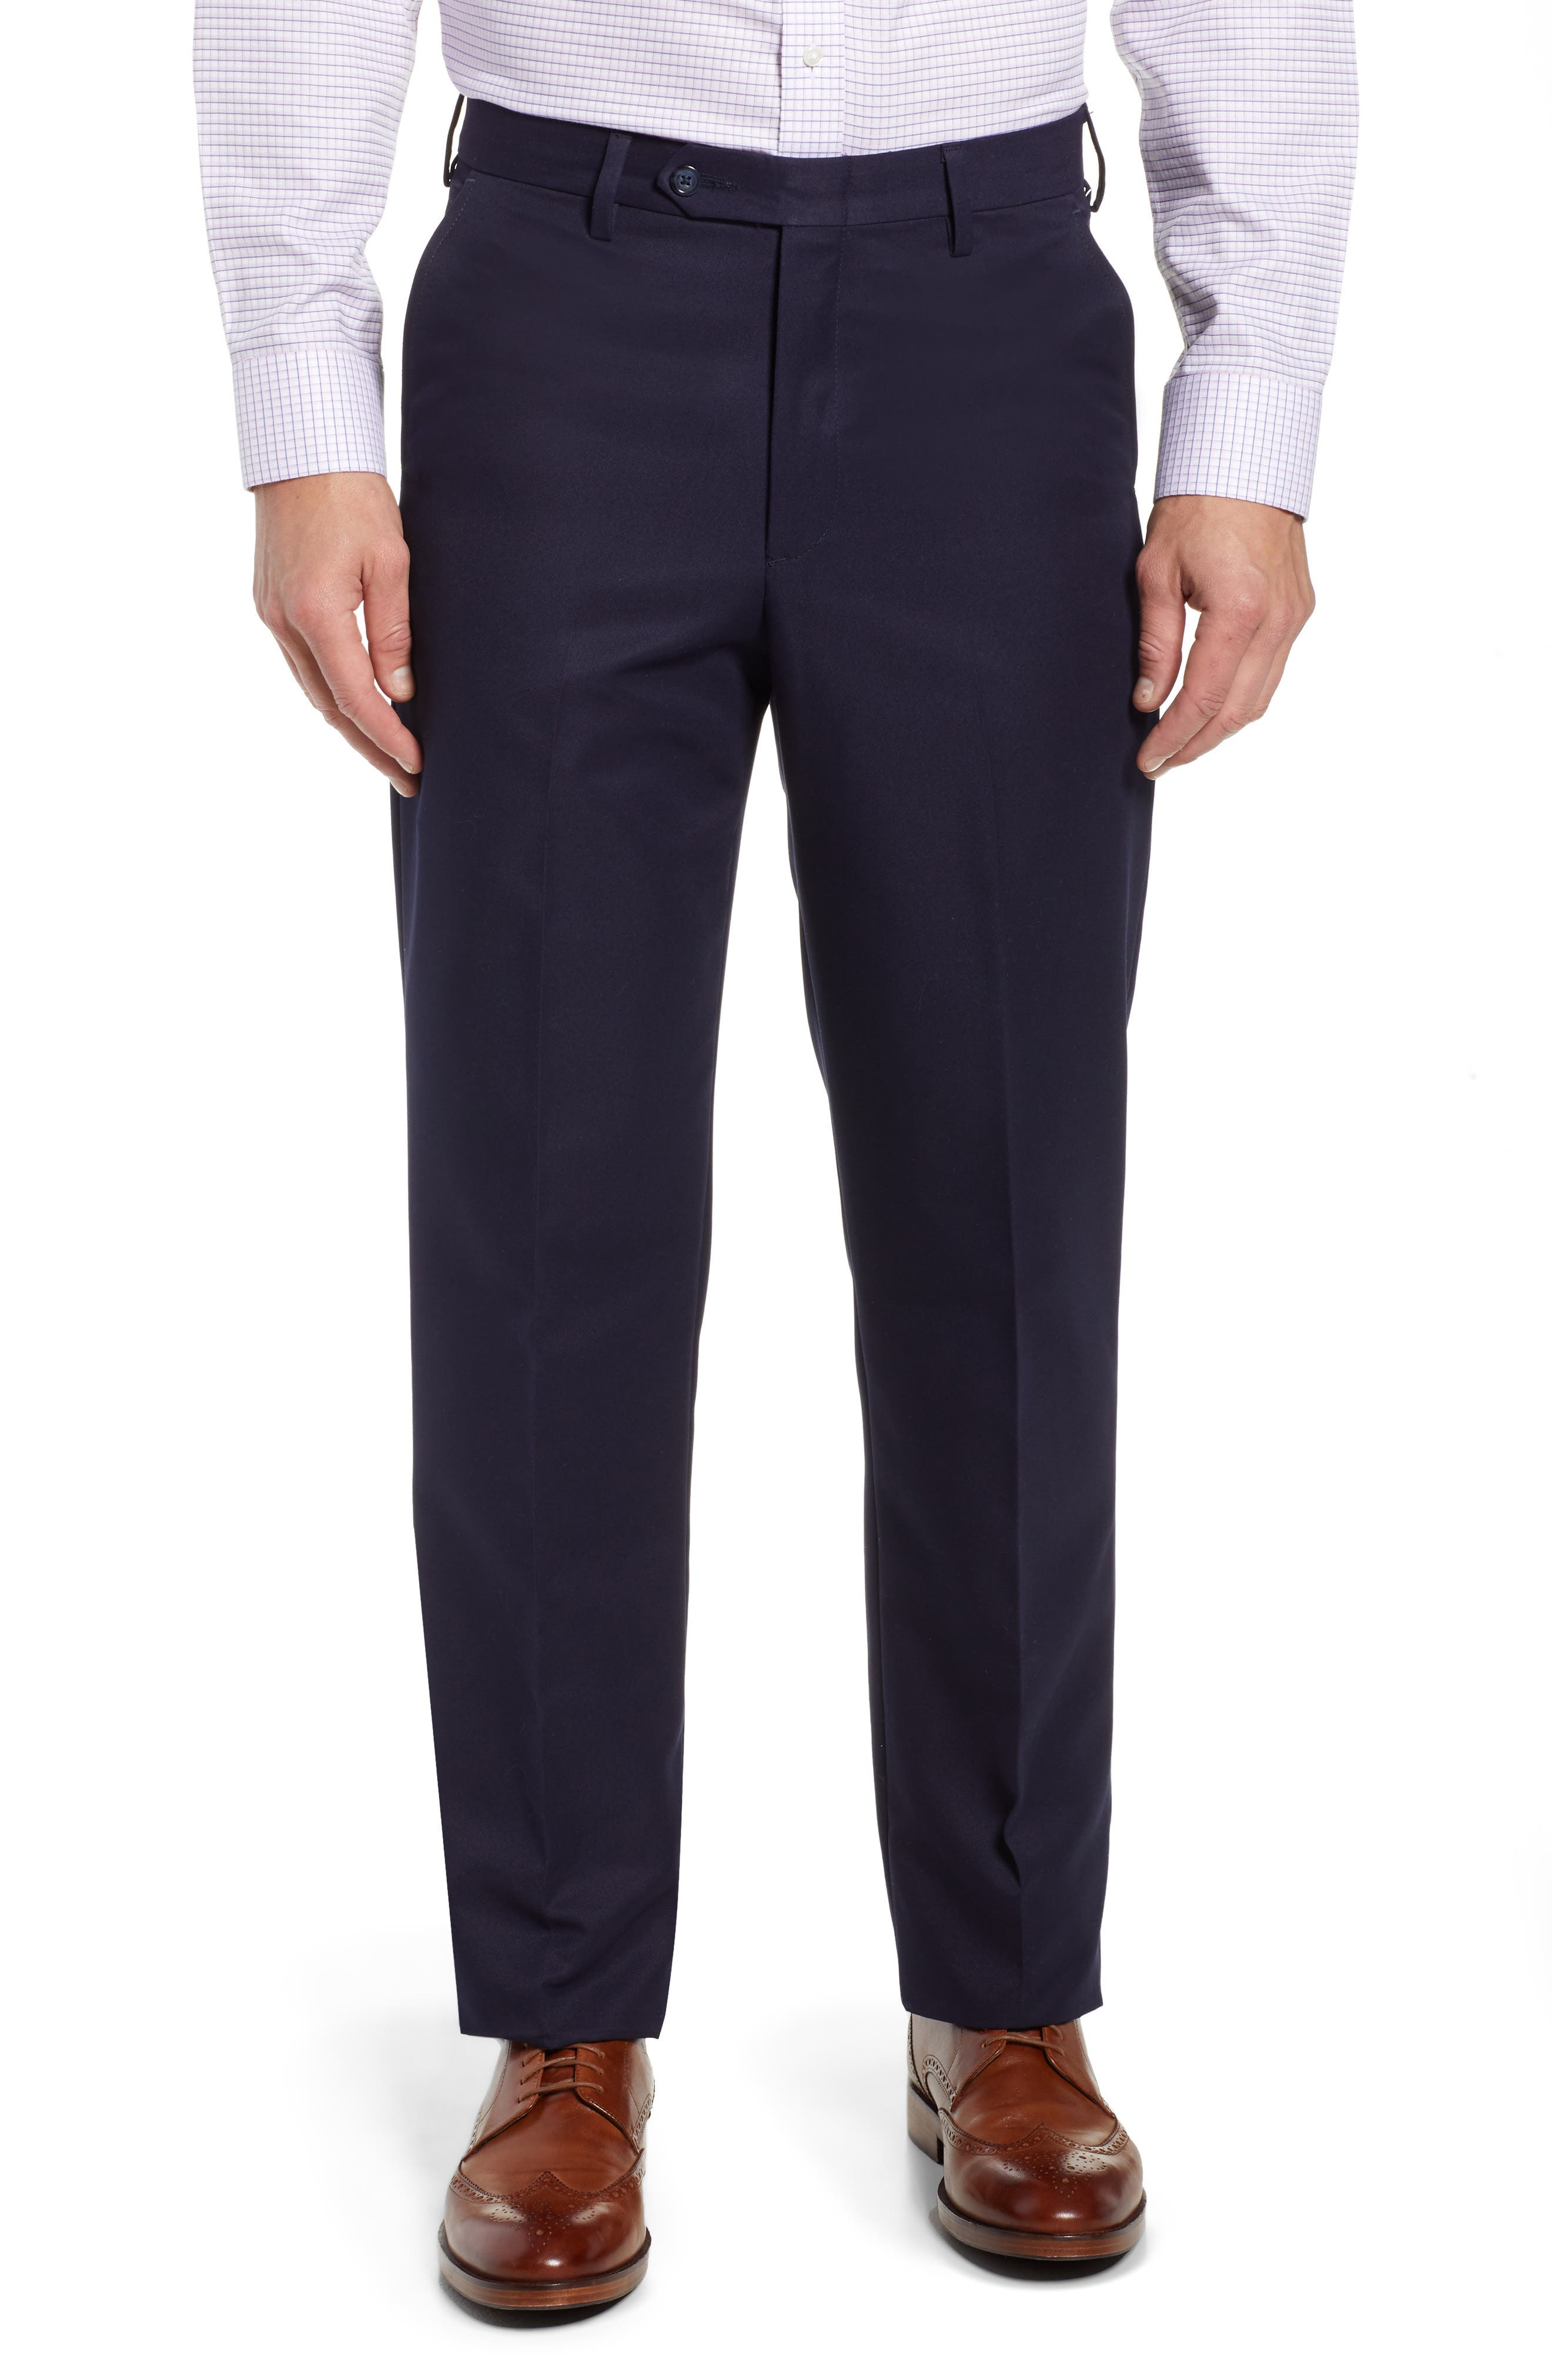 Classically tailored flat-front pants are crafted from smooth microfiber that resists water and stains to keep you looking sharp. Style Name: Berle Classic Fit Flat Front Microfiber Performance Trousers. Style Number: 5710710. Available in stores.